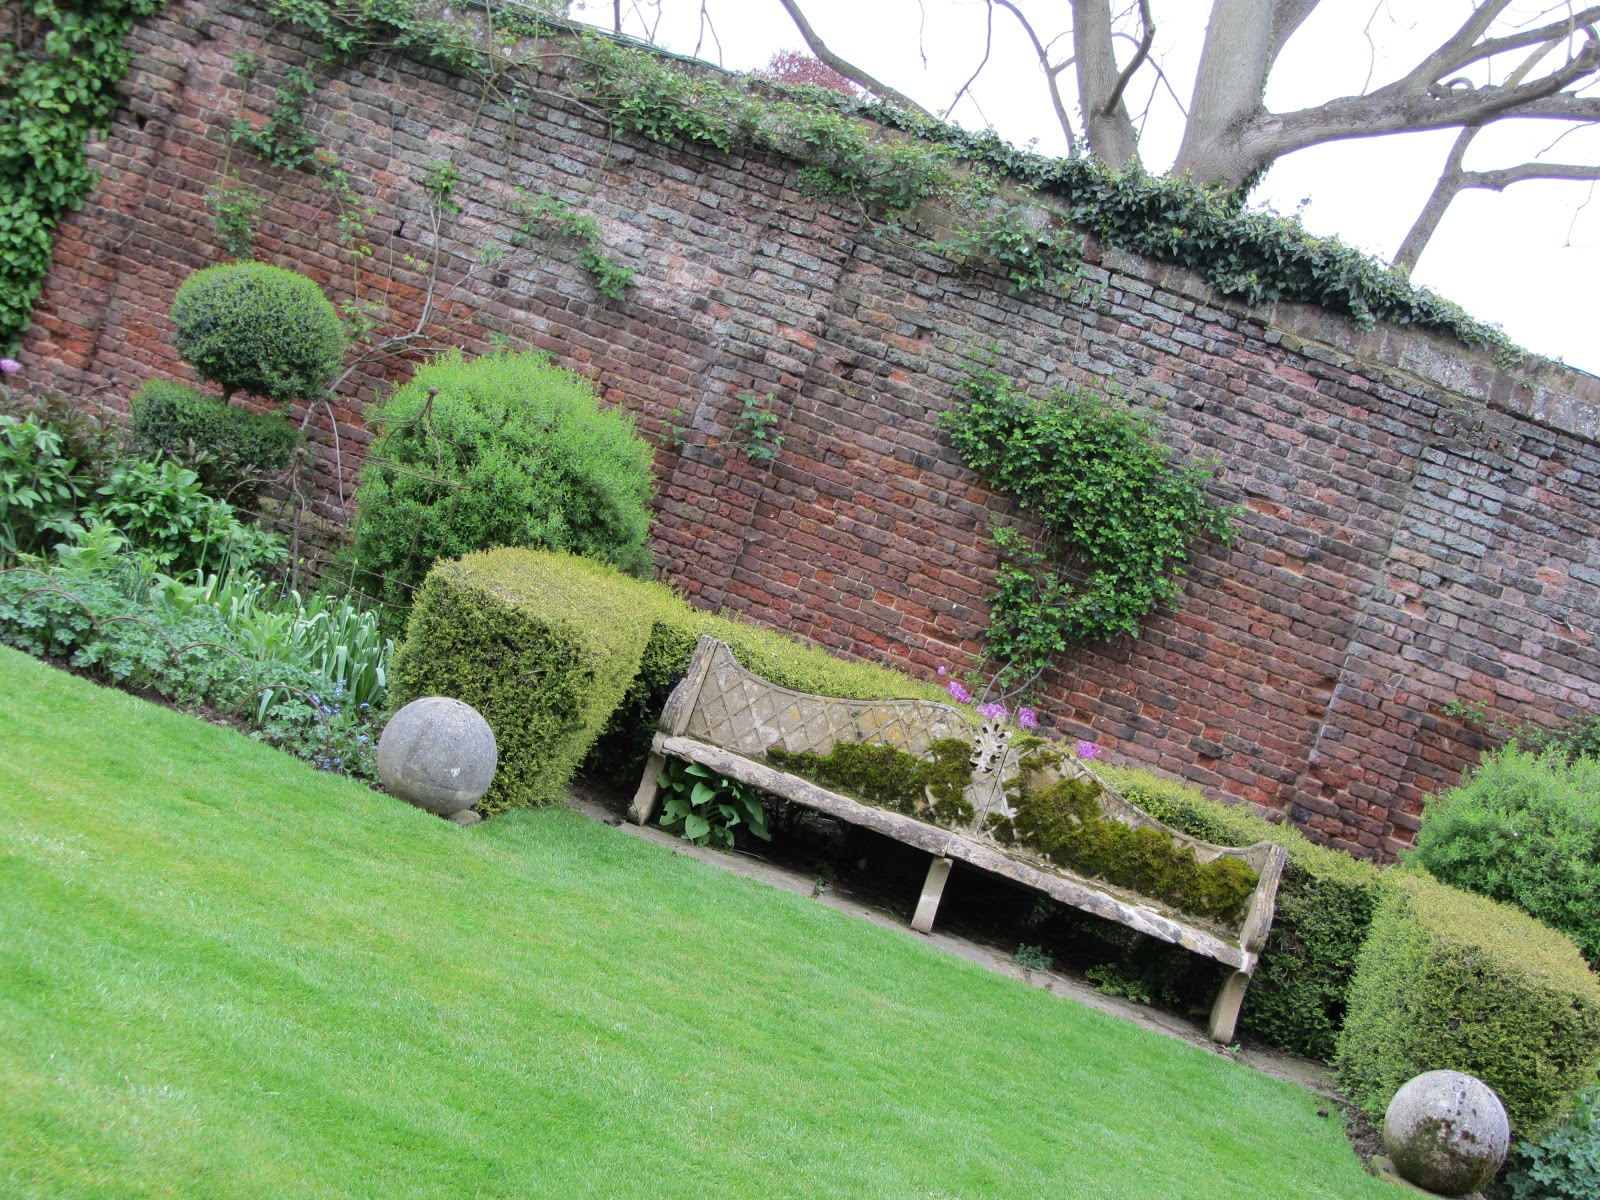 Ham photos rear garden at ormeley lodge -  The Sunken Garden We Have Just Left From Here The White Statue That Was So Prominent Earlier Is Hardly Visible Thanks To Its Sunken Setting And The